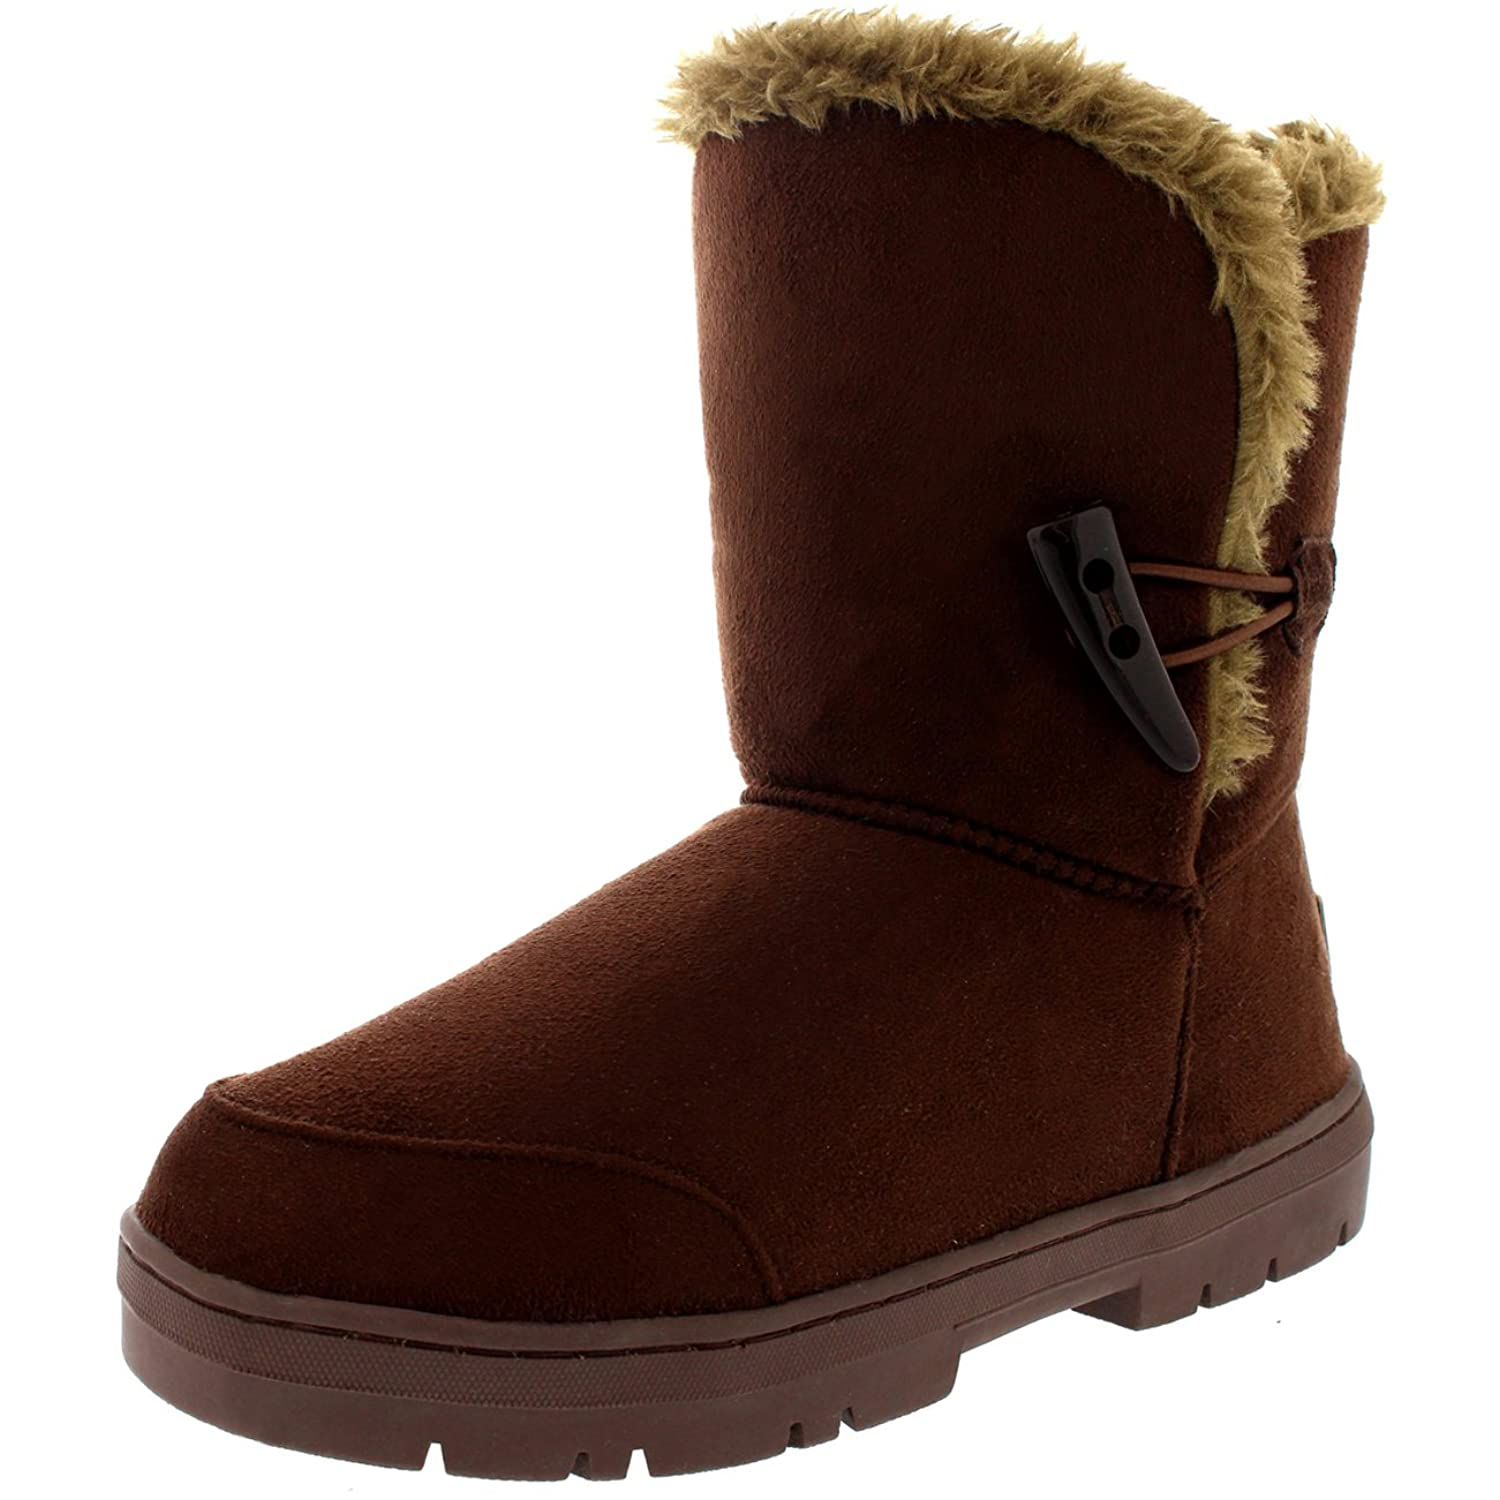 Mujer One Toggle Roap Thick Fur Lined Impermeable Invierno Nieve Rain Botas - Marrón Claro - 39 bV06r